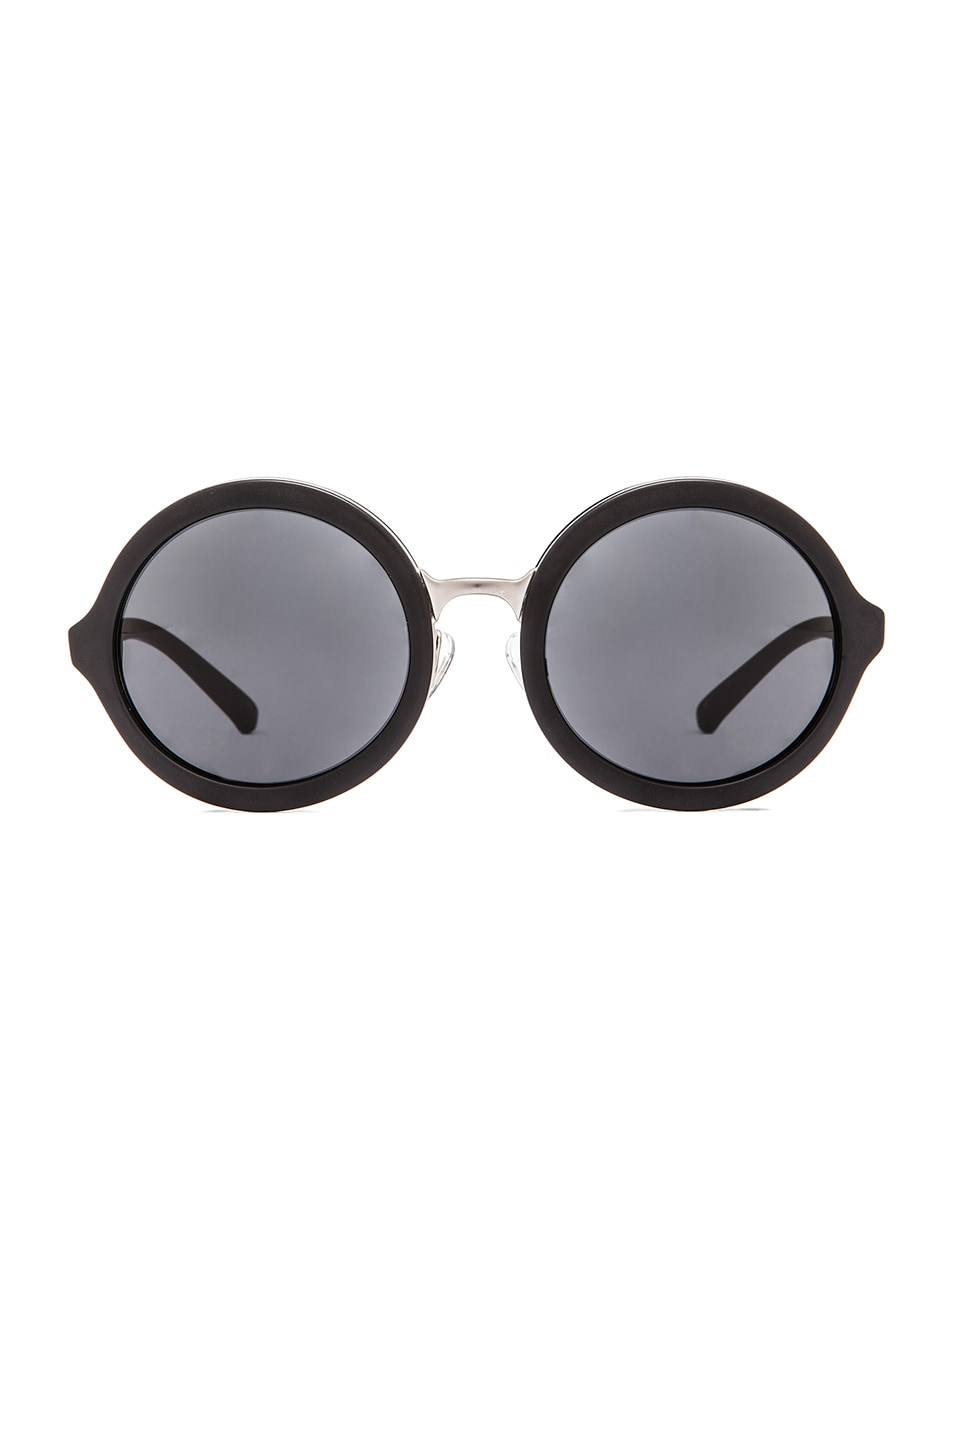 Image 1 of 3.1 phillip lim Circle Sunglasses in Frosted Black